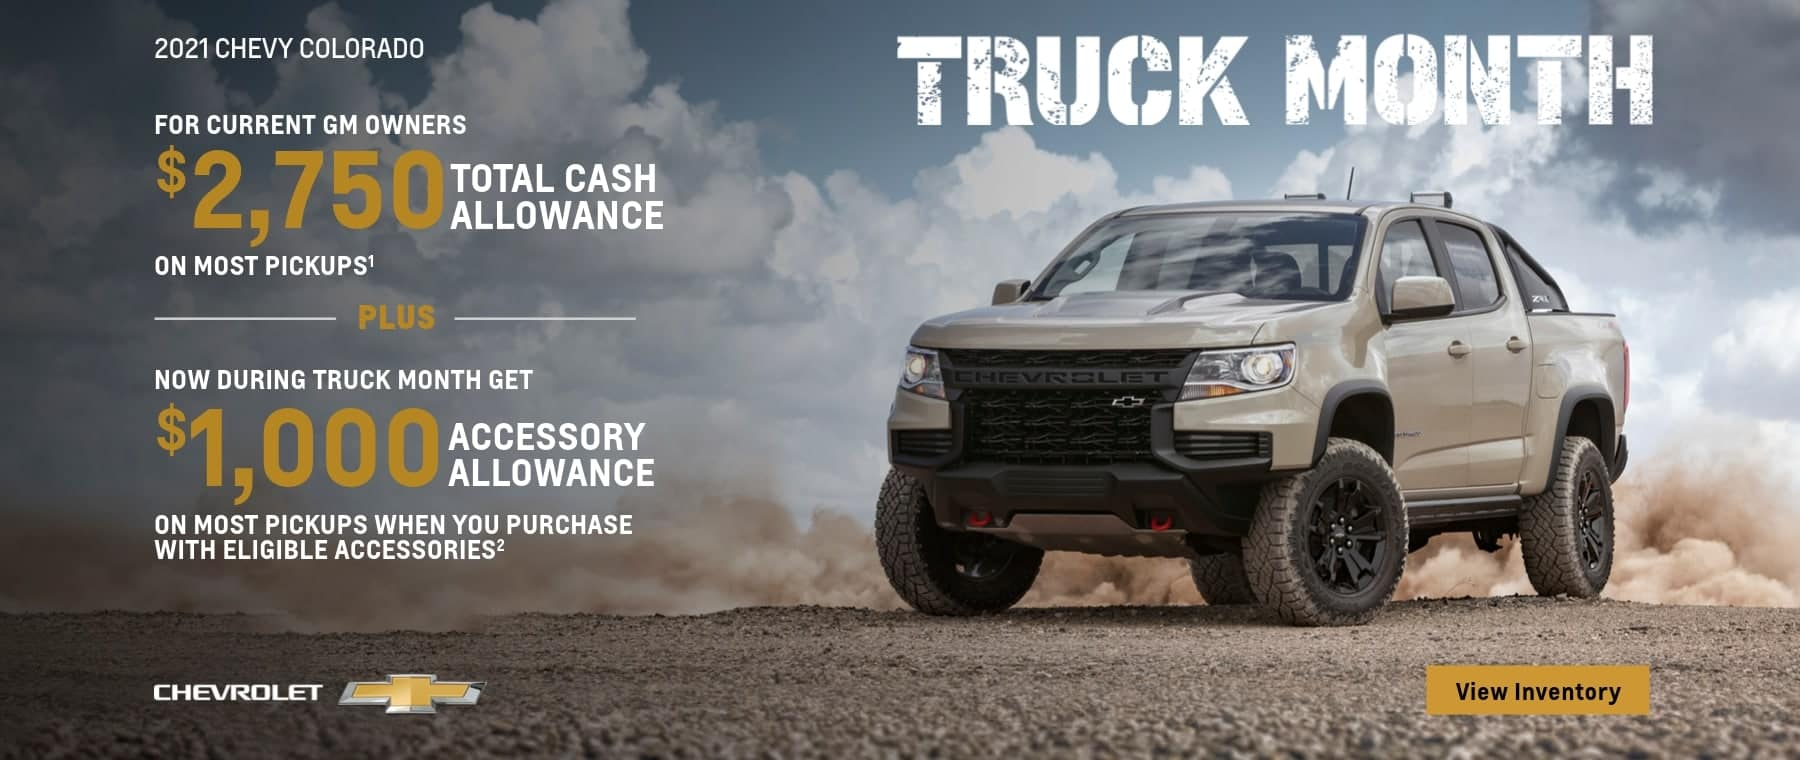 For current GM owners $3,750 Total cash allowance on most pickups Plus now during truck month get $1,000 accessory allowance on most pickups when you purchase with eligible accessories.